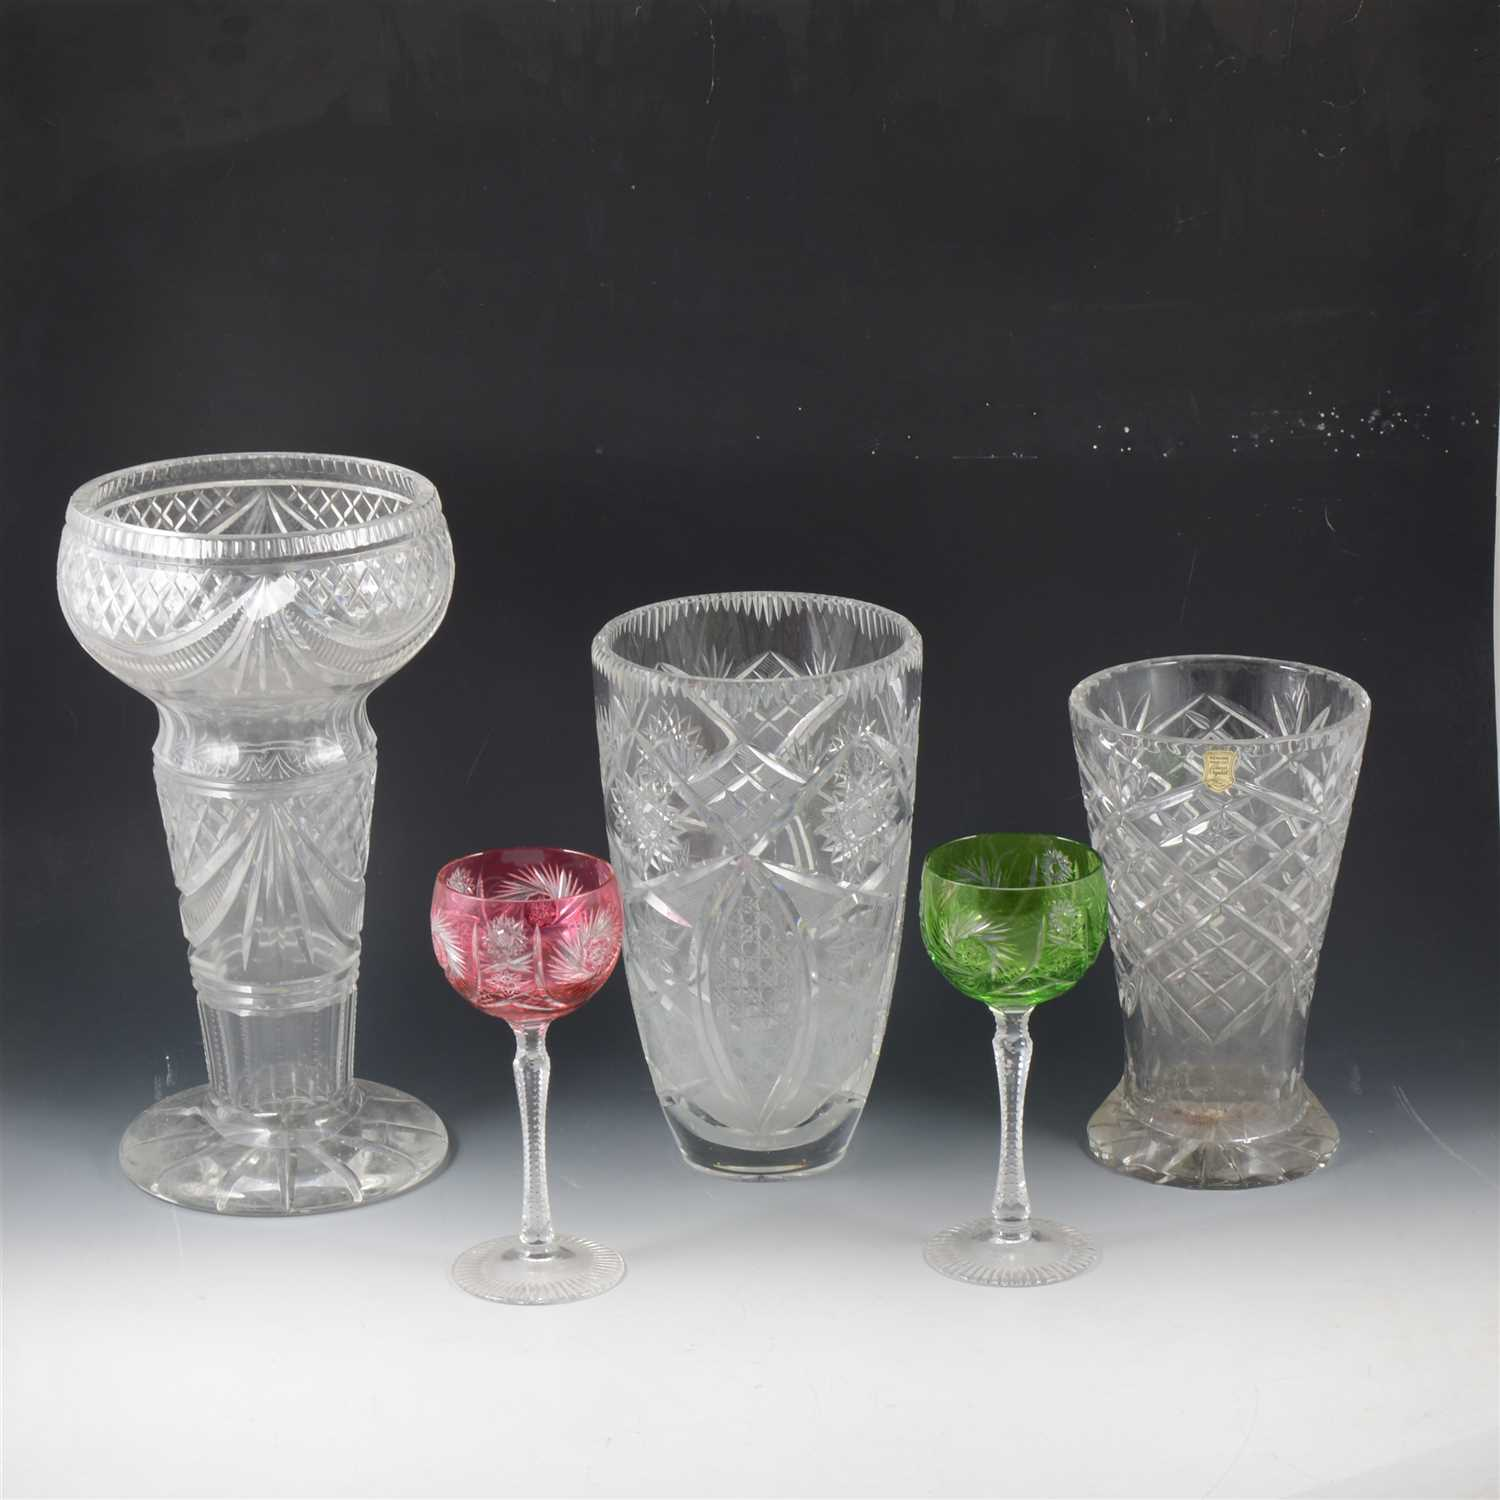 Lot 63 - Edinburgh crystal decanter, 31cm; and other glassware.